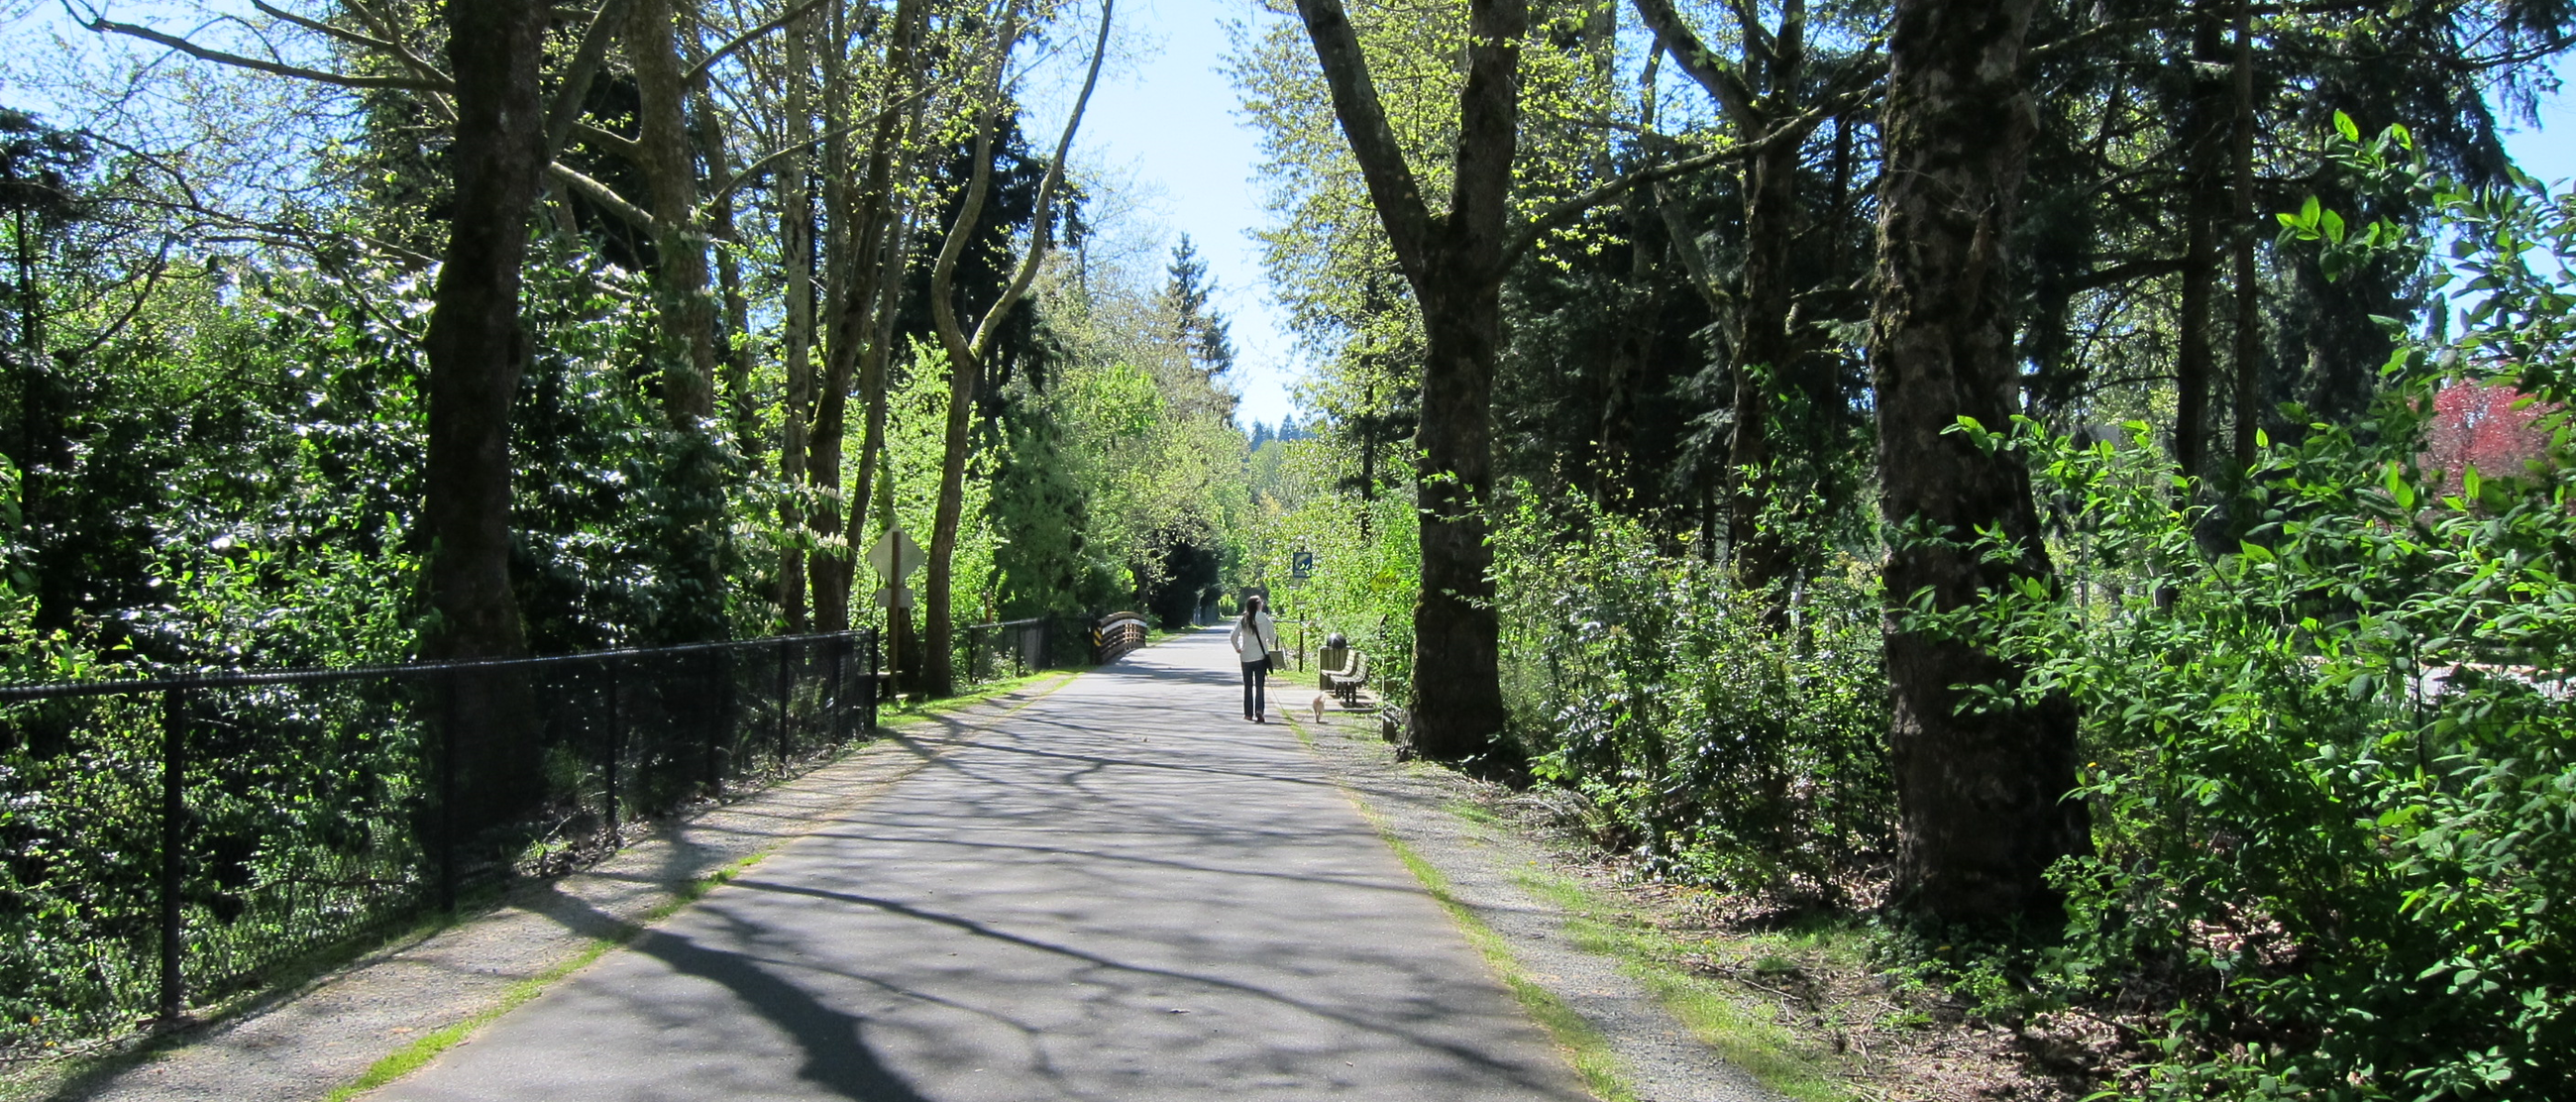 Burke Gilman Trail Dog Walker 4-29-2019 R